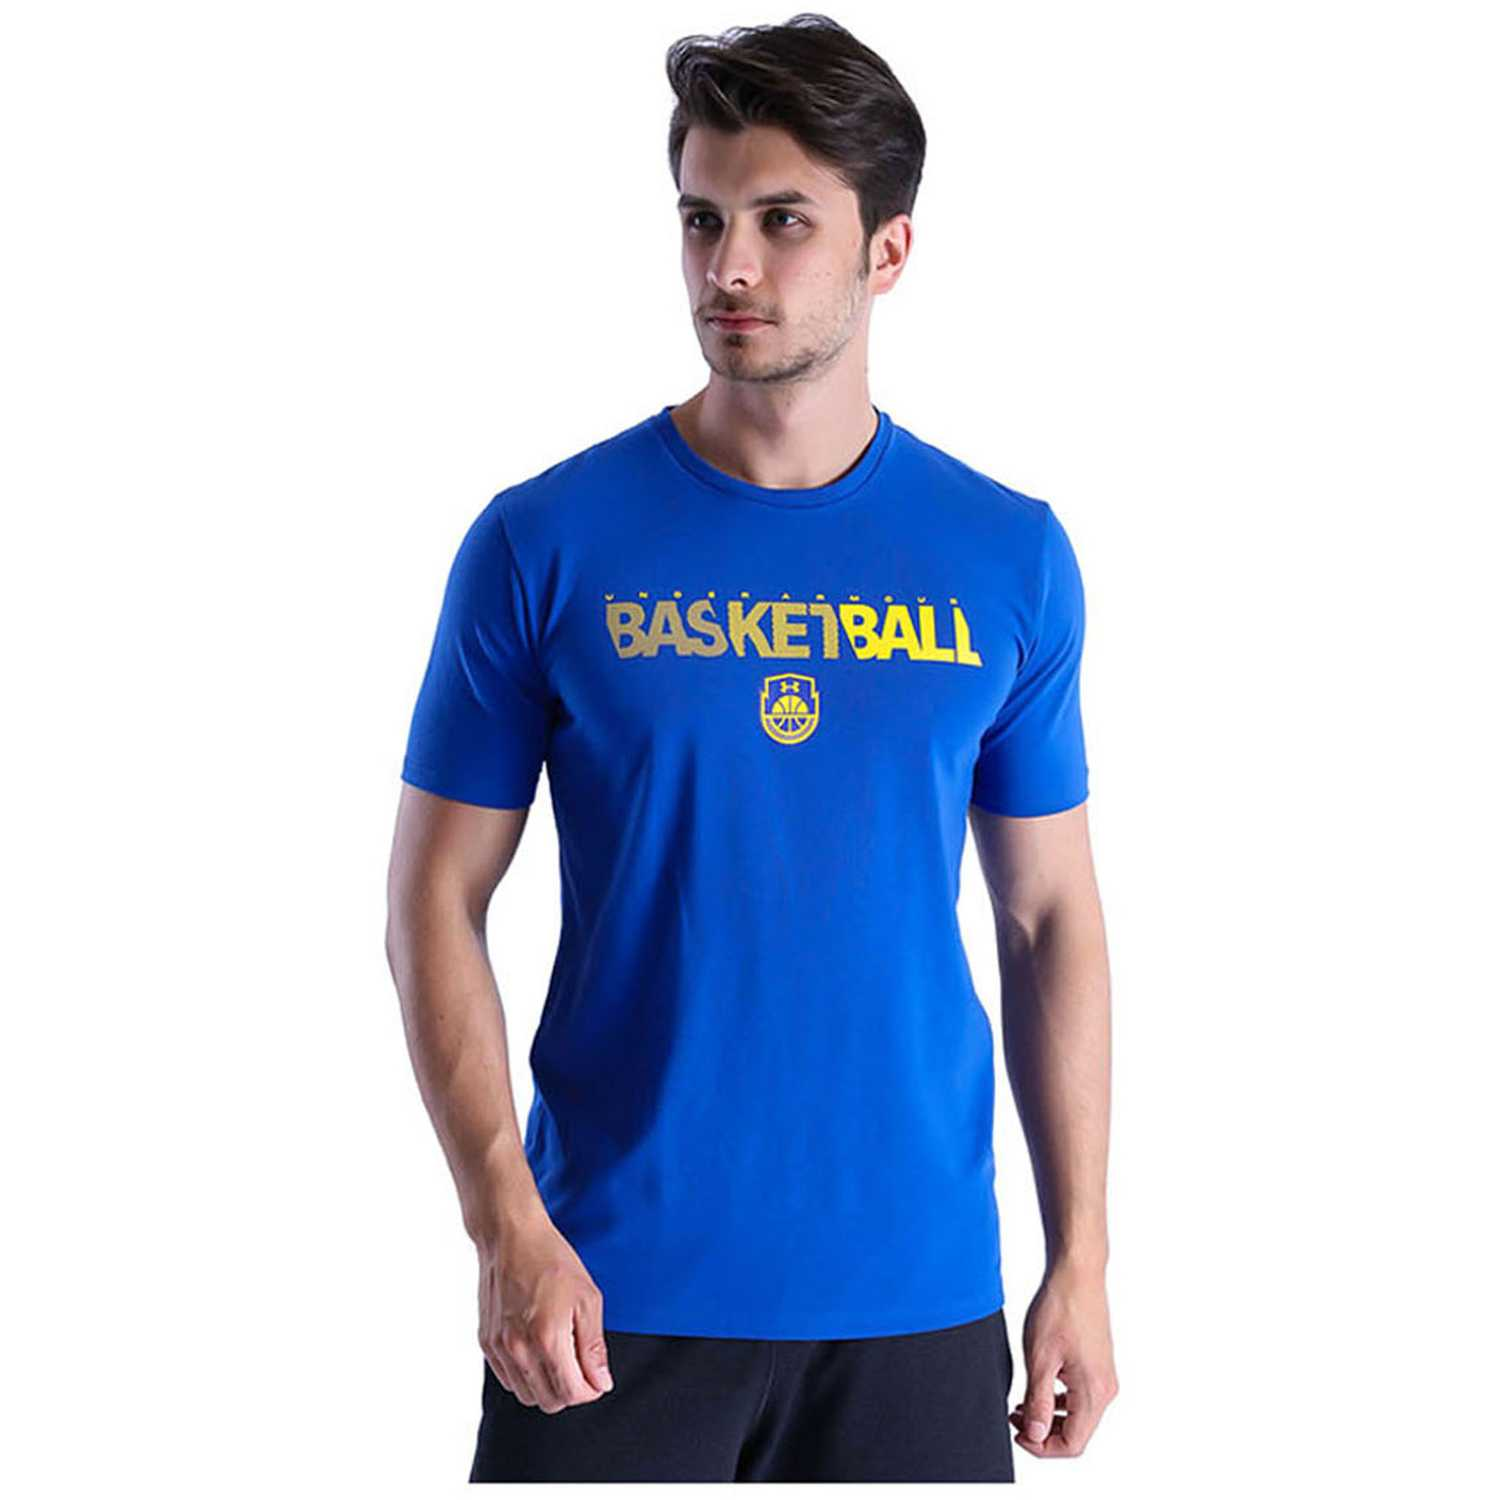 Polo de Hombre Under Armour Azulino basketball wordmark ss ... c06c6c04c8e7f